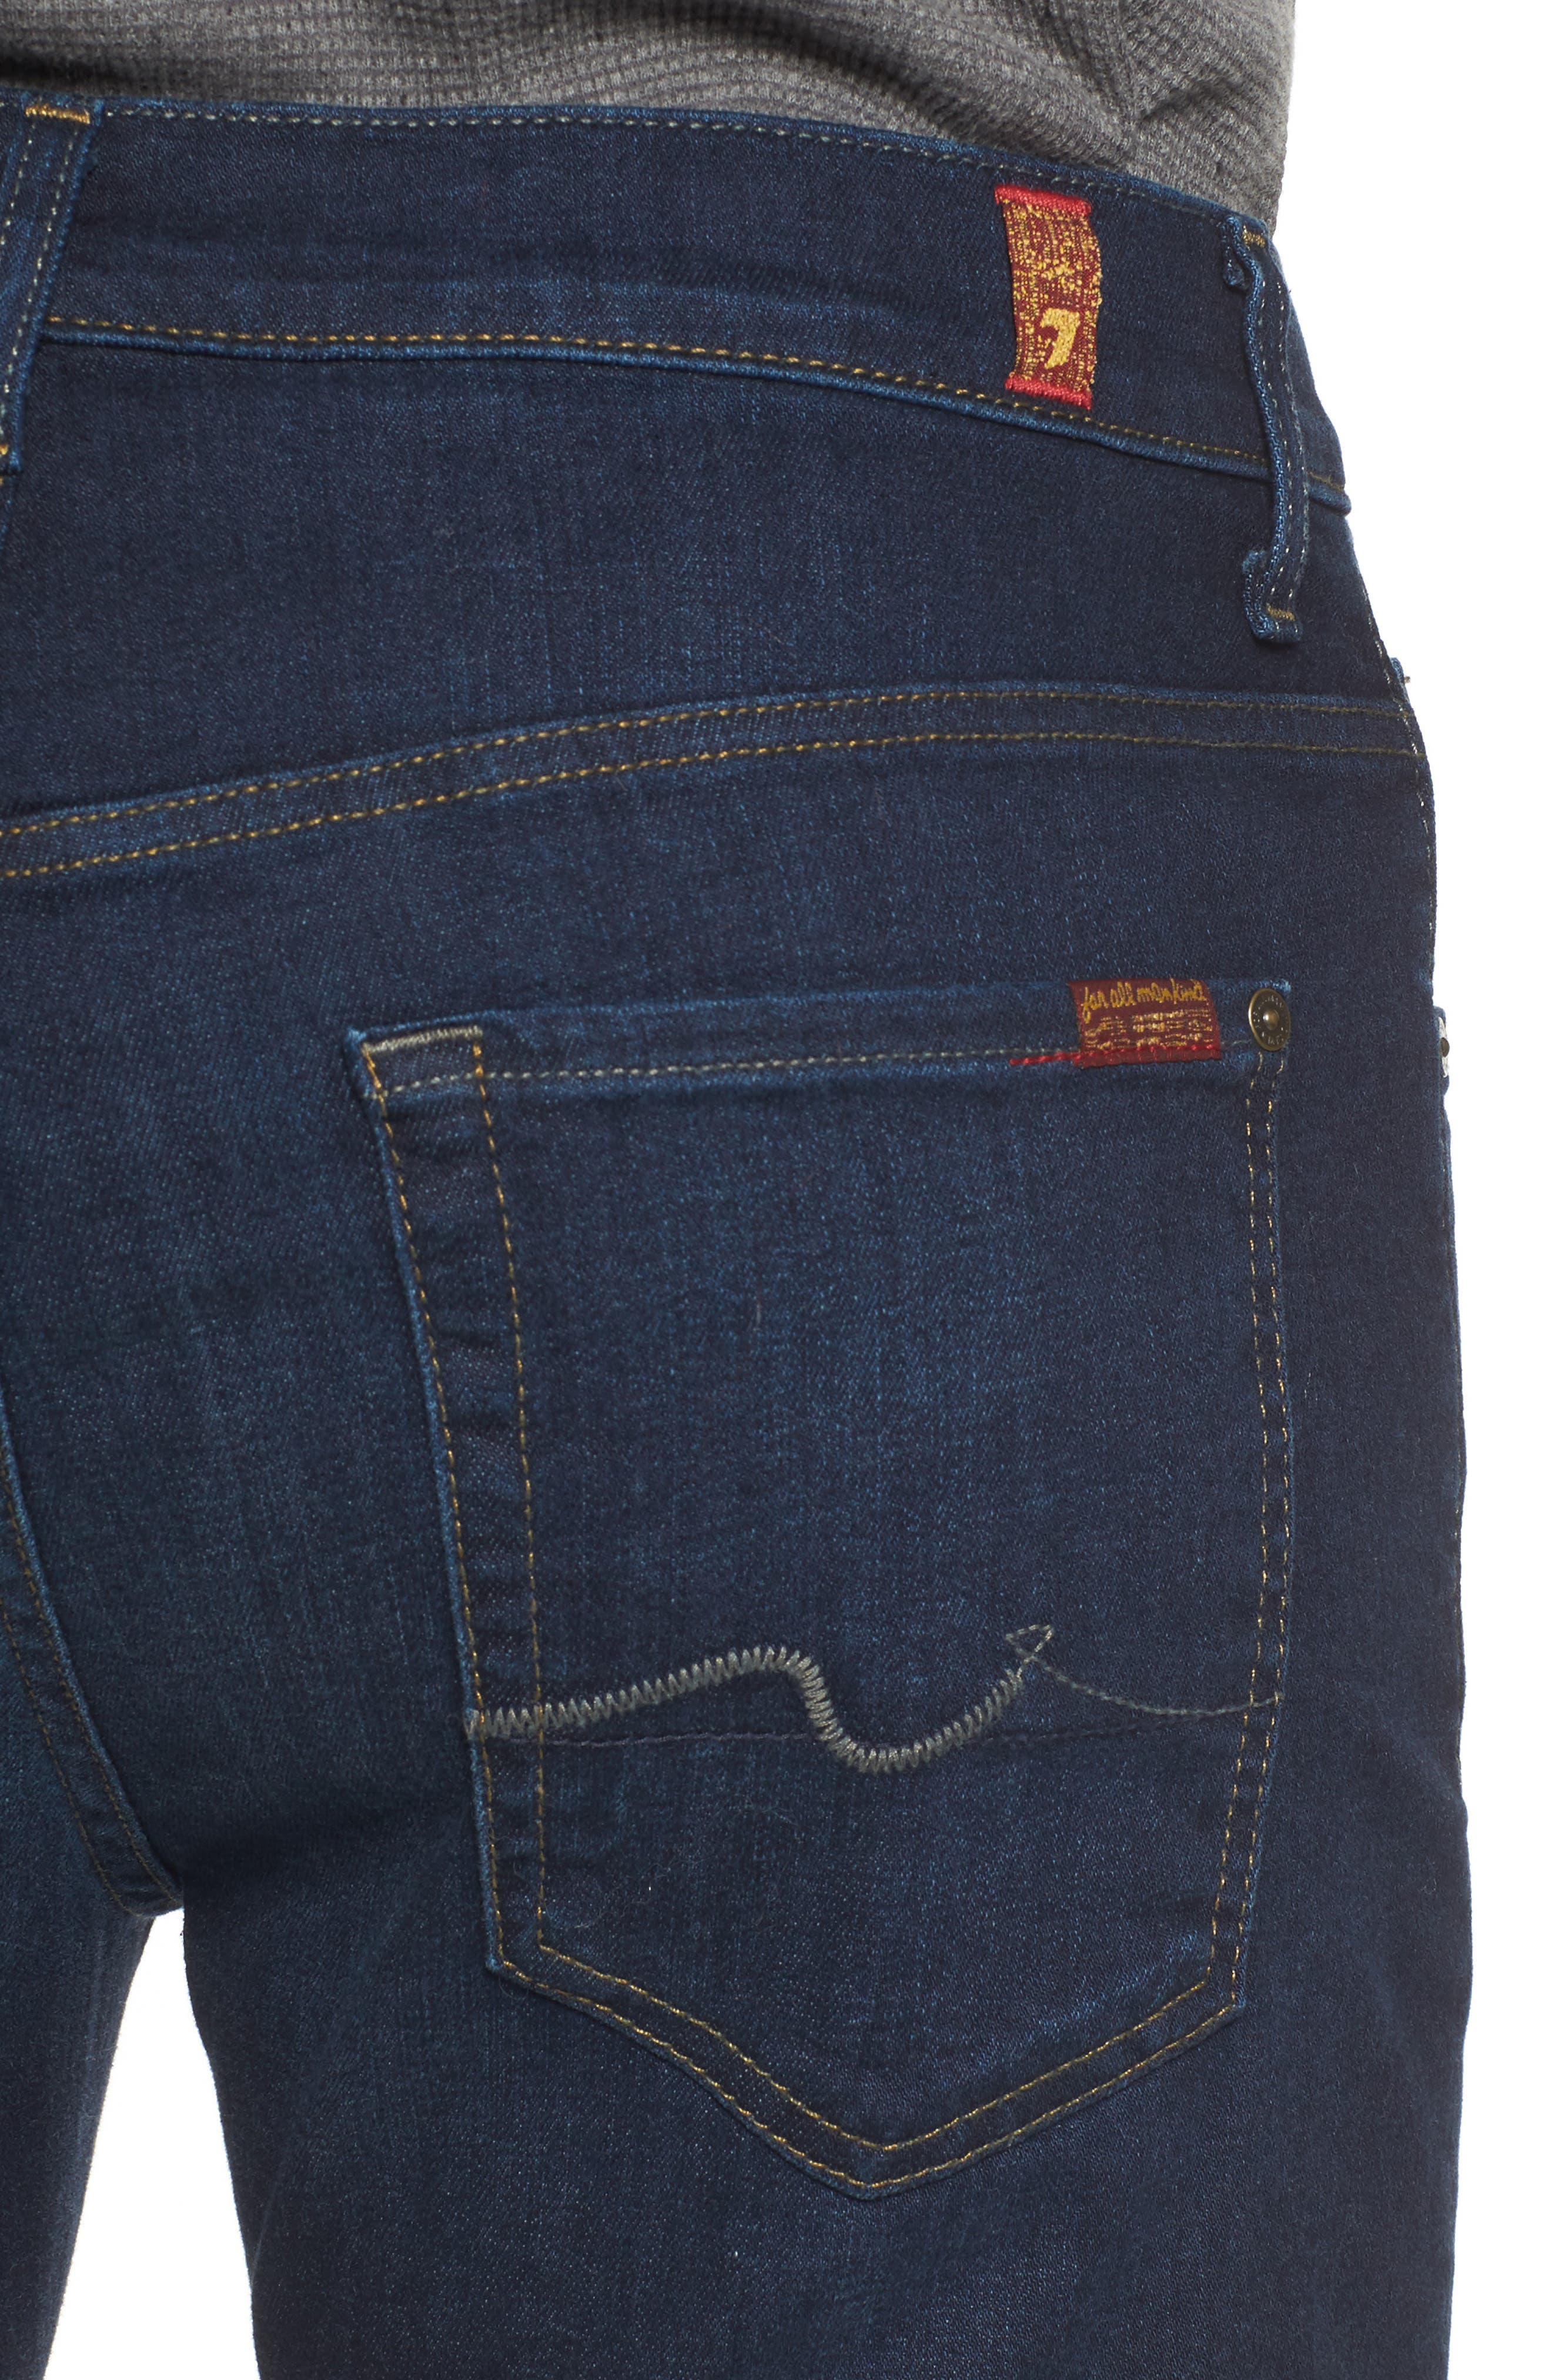 Austyn Relaxed Fit Jeans,                             Alternate thumbnail 4, color,